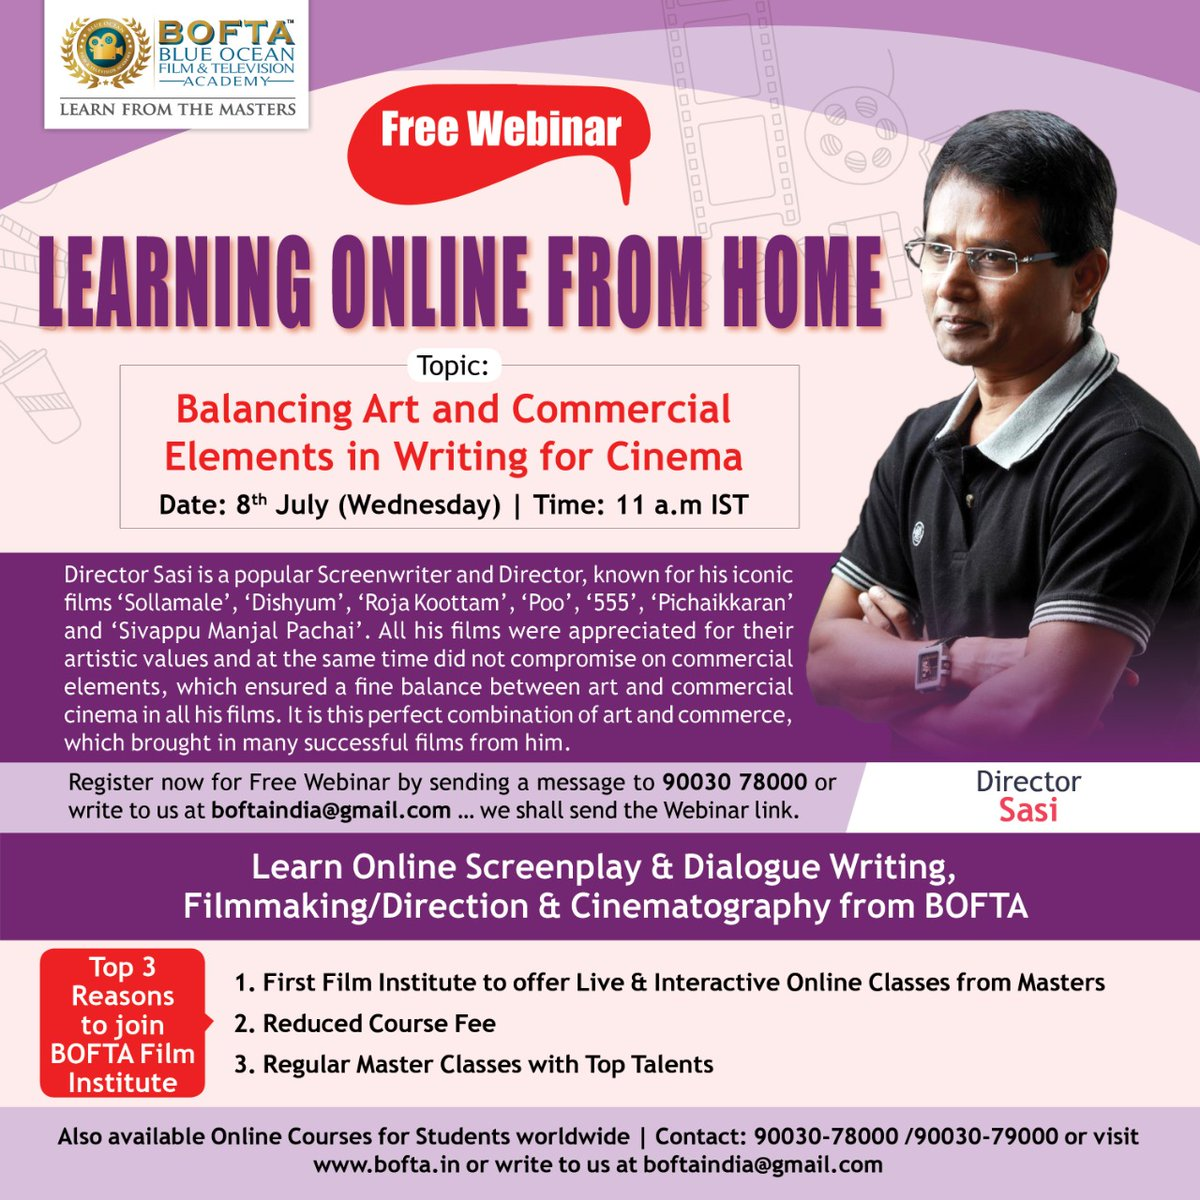 @BOFTAindia s next webinar by Director Sasi on Wednesday at 11 am. Do register if interested to attend 👍💪👍